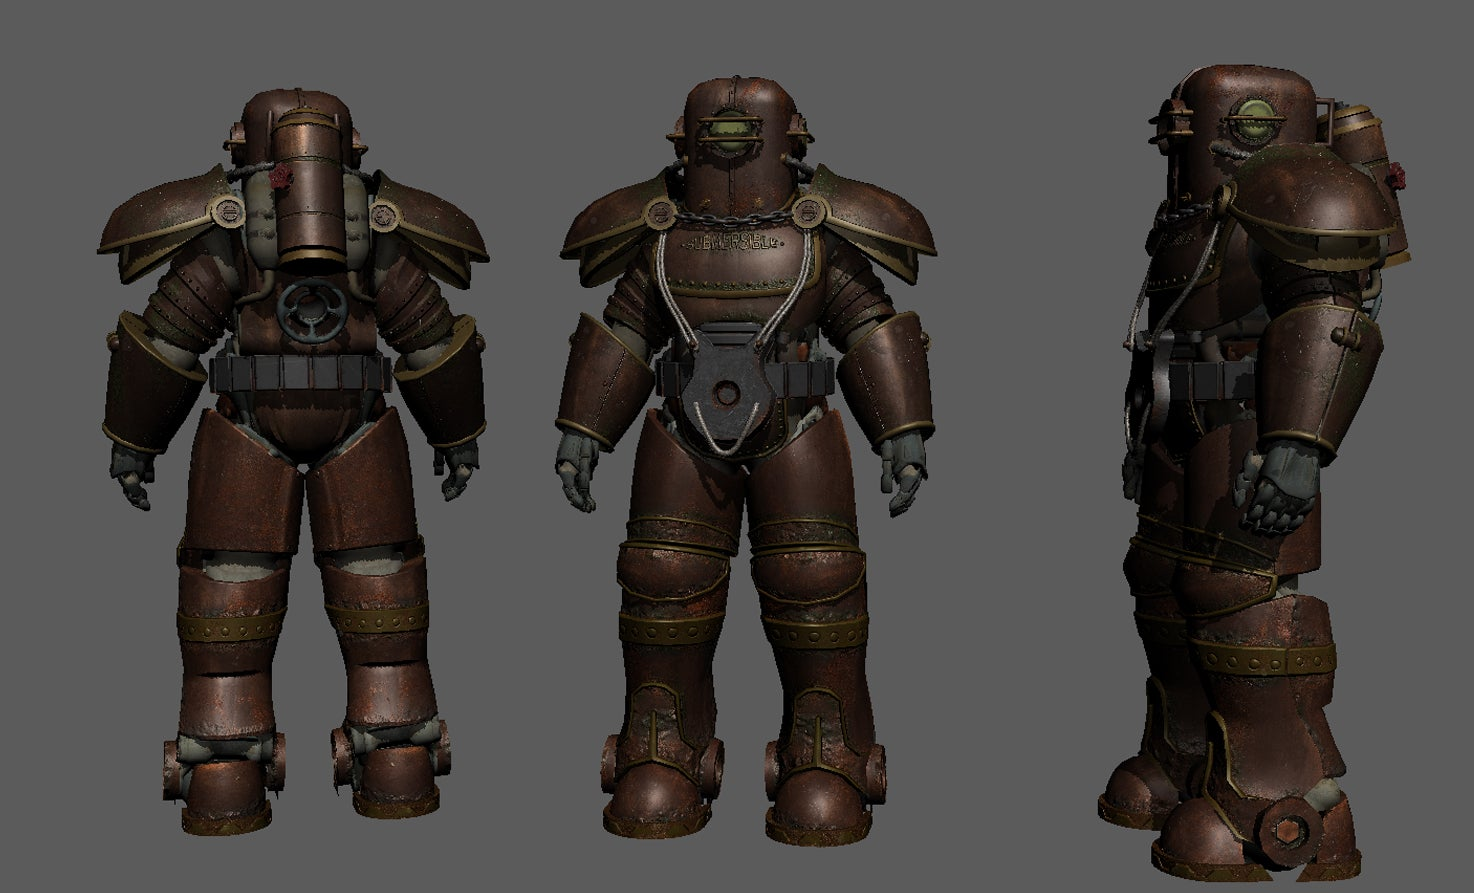 BioShock-Inspired Fallout 4 Armour Looks Great